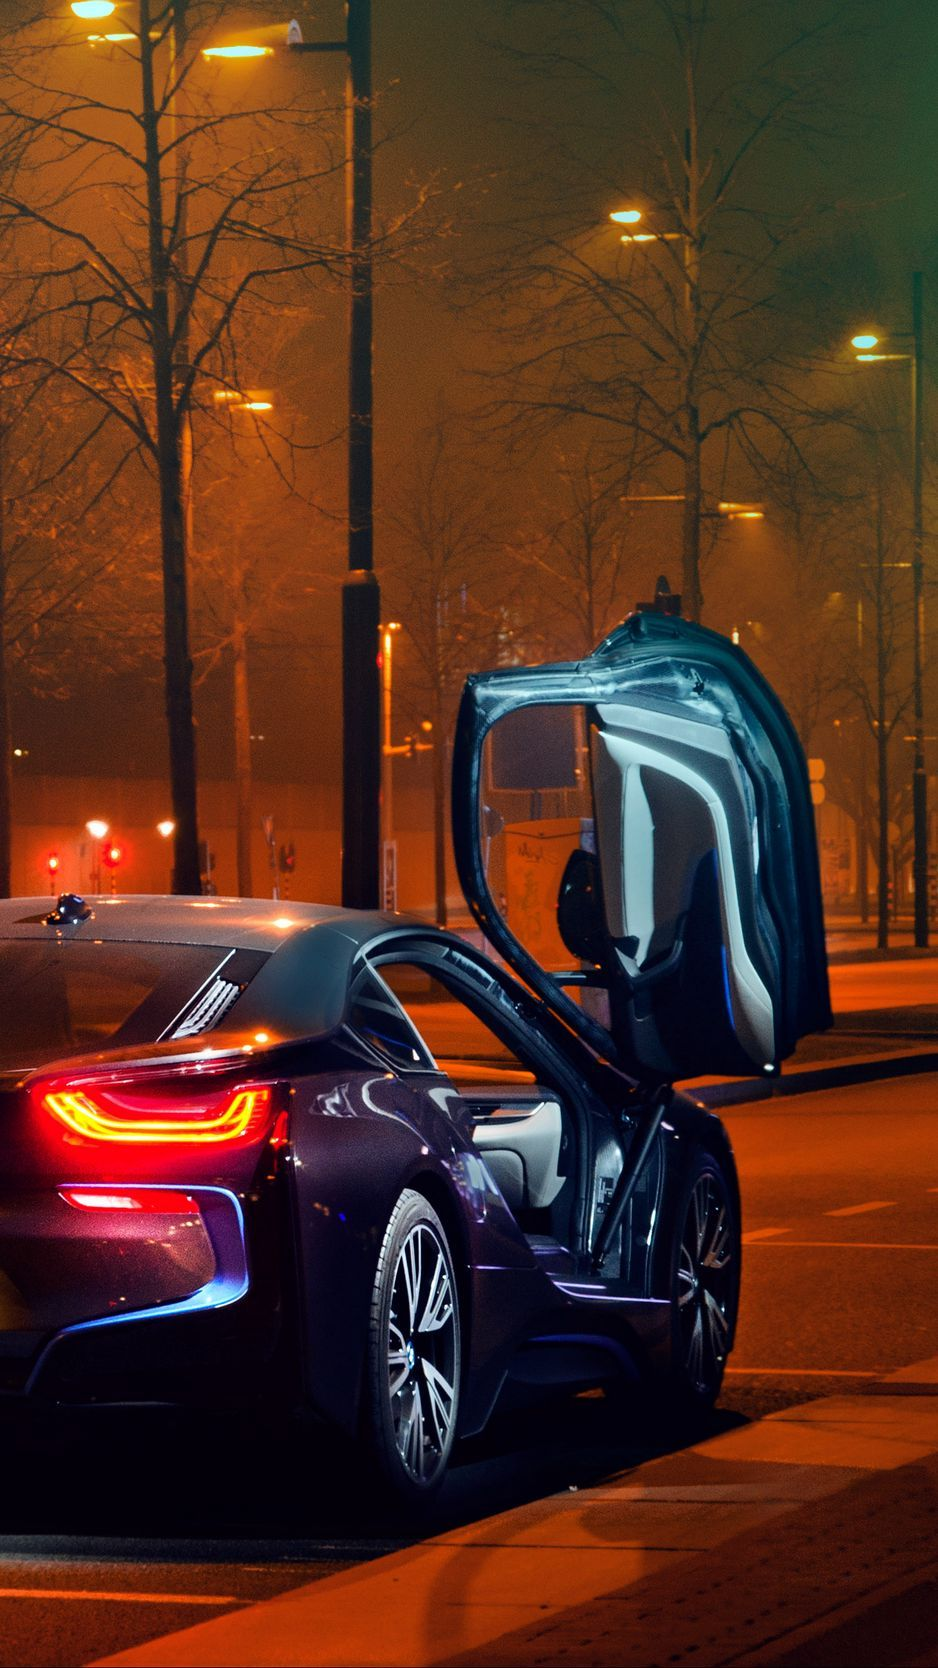 Bmw I8 2020 Iphone Wallpapers Wallpaper Cave